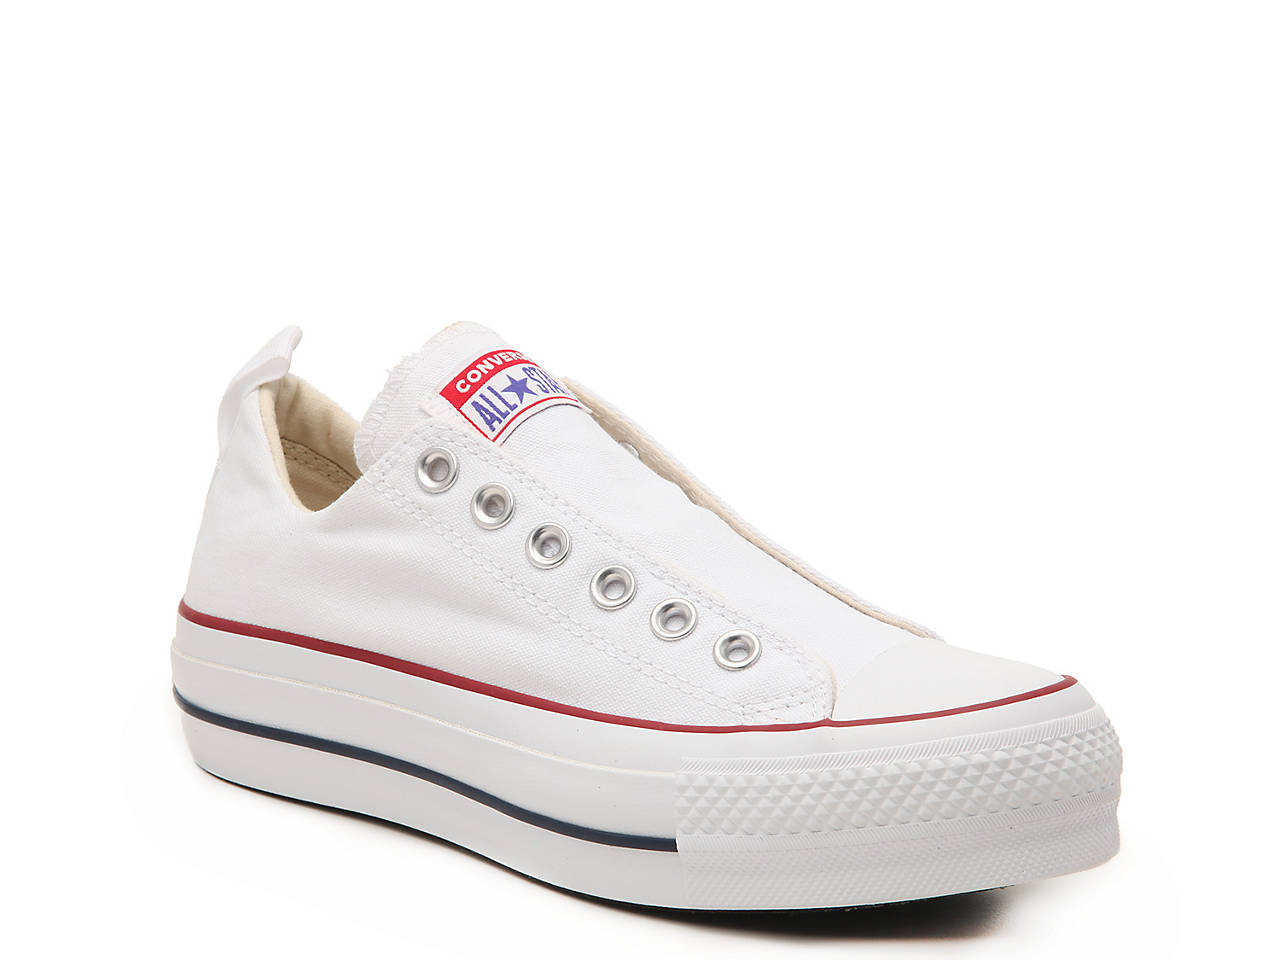 Converse Chuck Taylor All Star Platform Slip On Sneaker